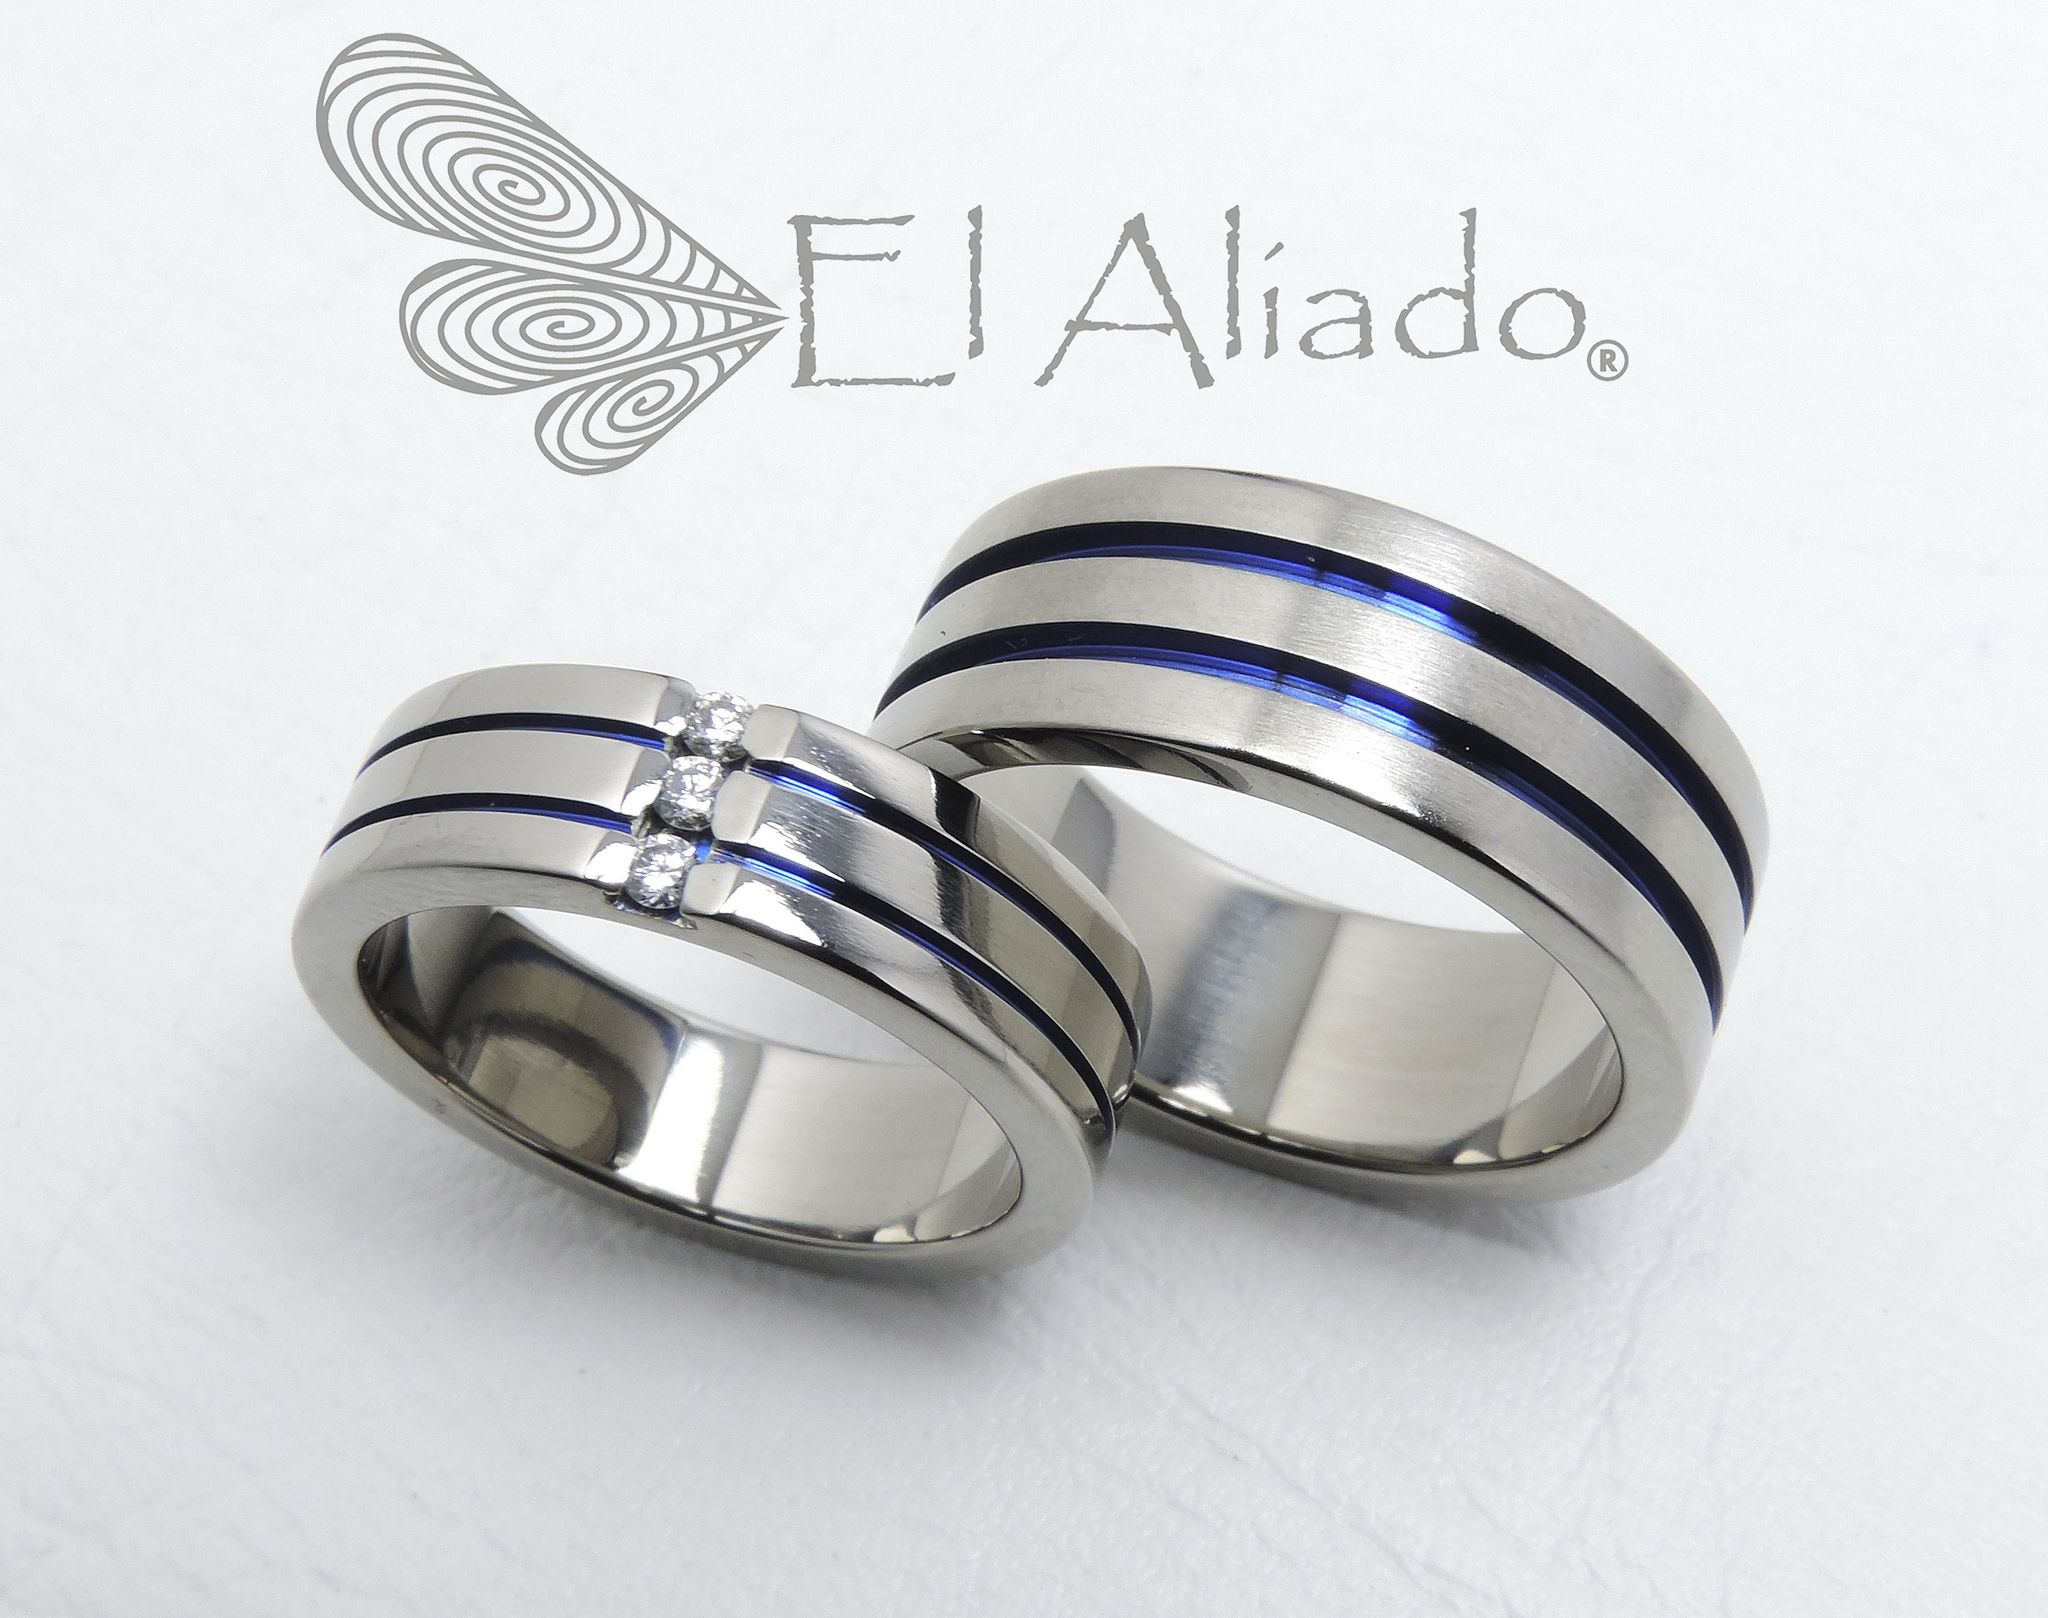 It is just a graphic of 32. Argollas de matrimonio en titanio, doble canal y diamantes